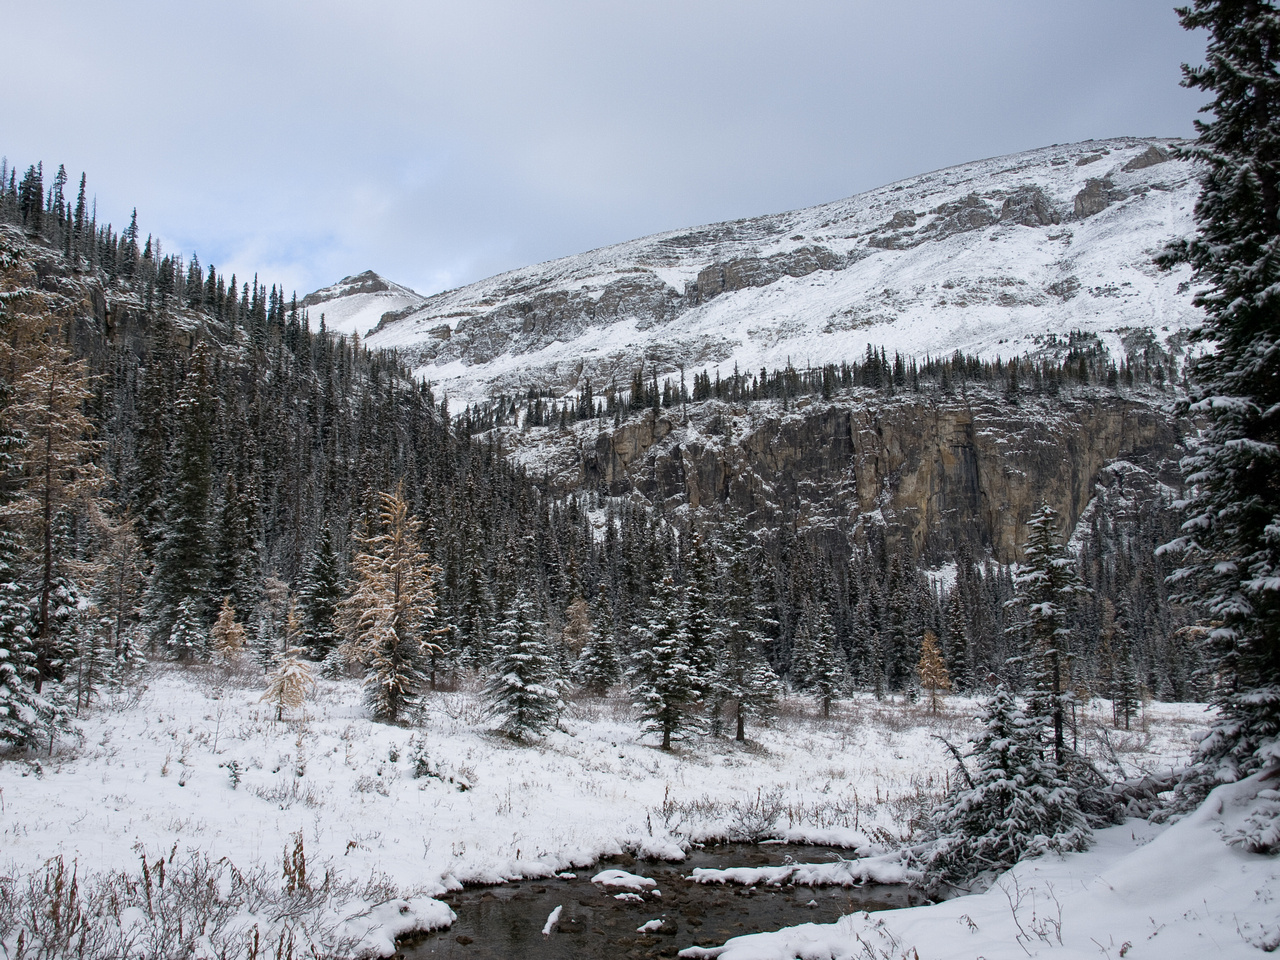 The trail between Tower and Rockbound Lake.